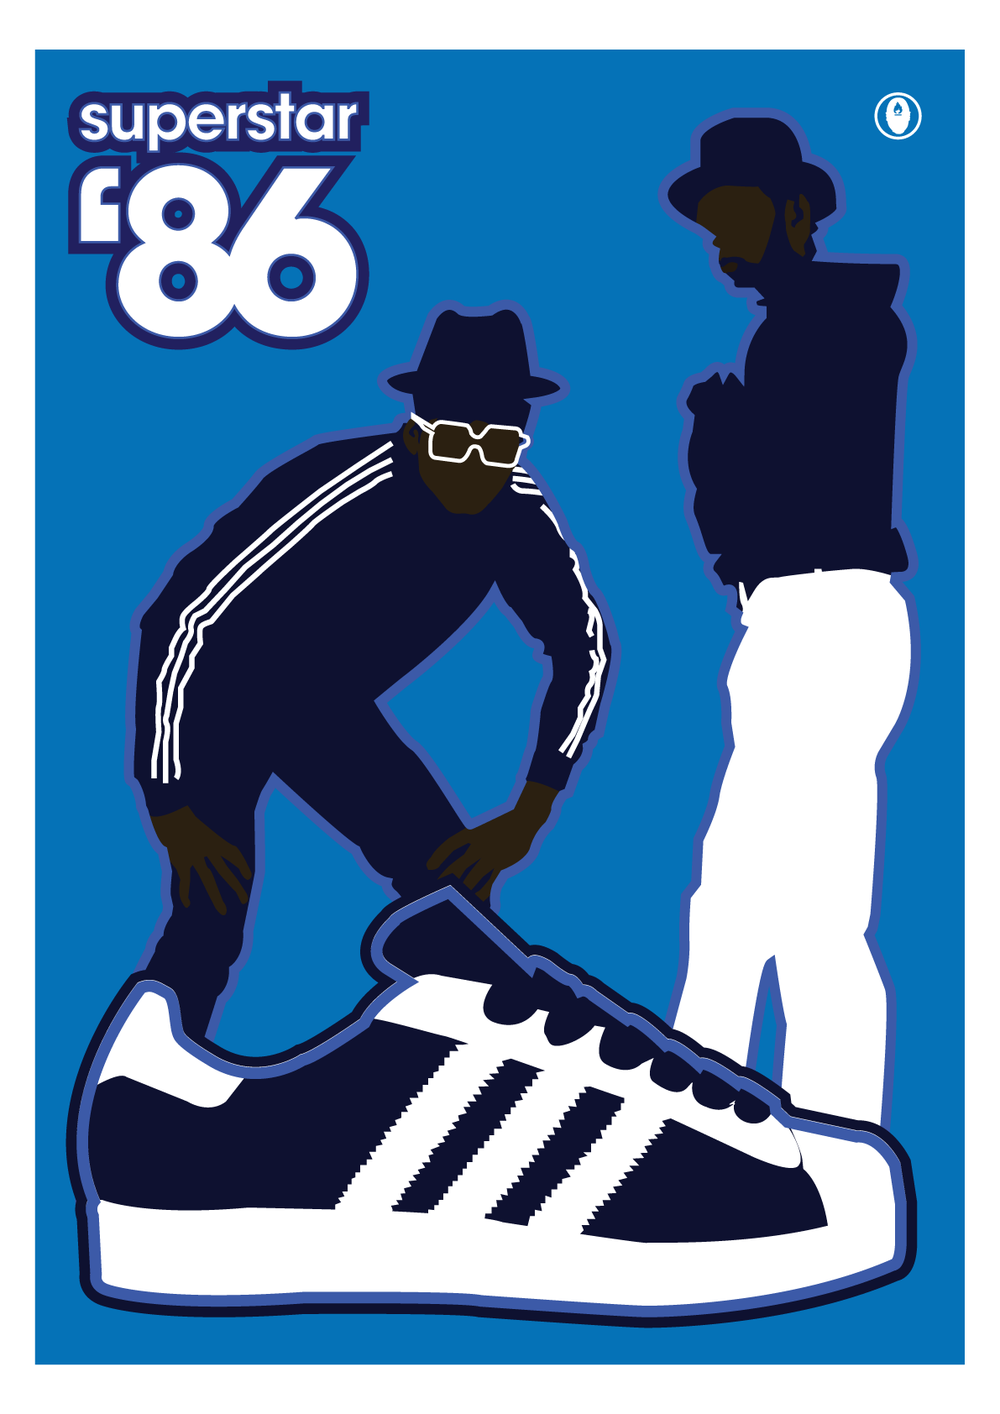 Image of ADIDAS SUPERSTAR '86